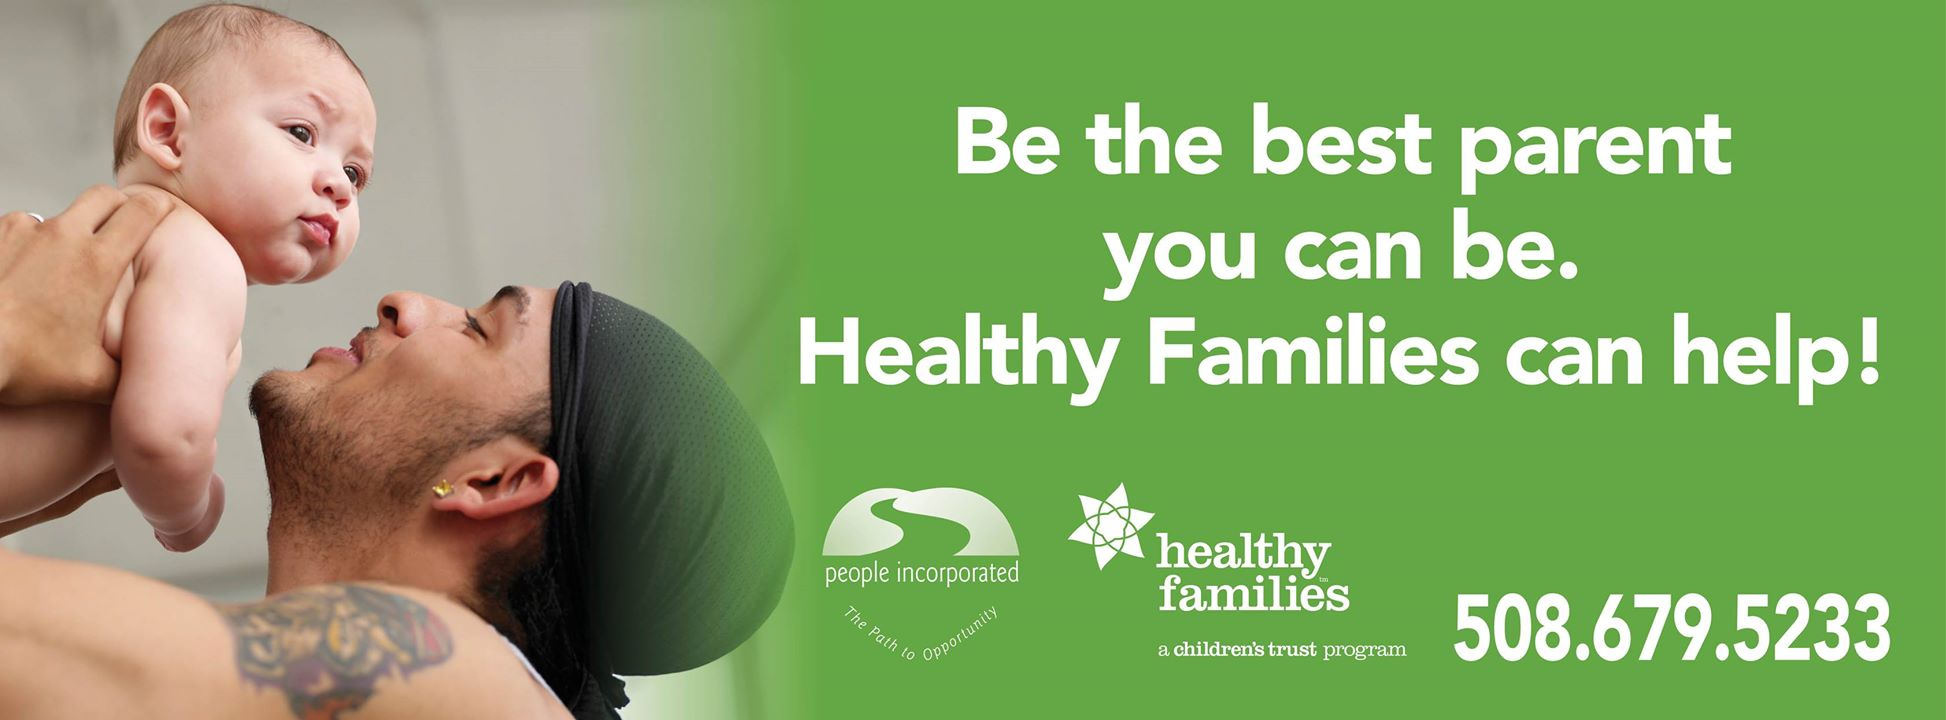 healthy families banner